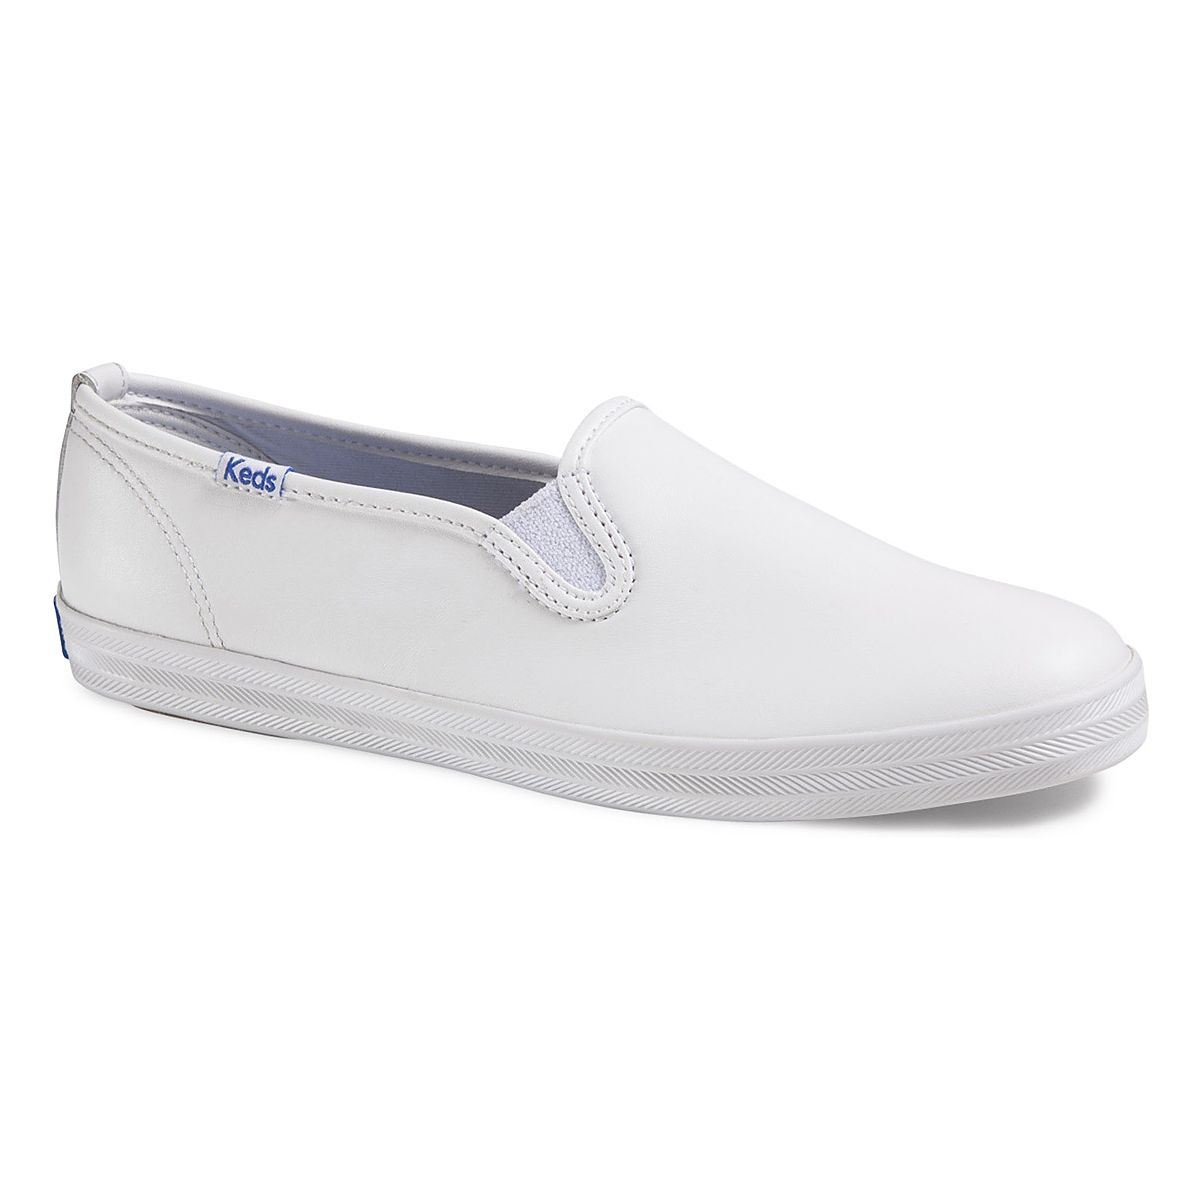 keds womens chion slip on leather ebay